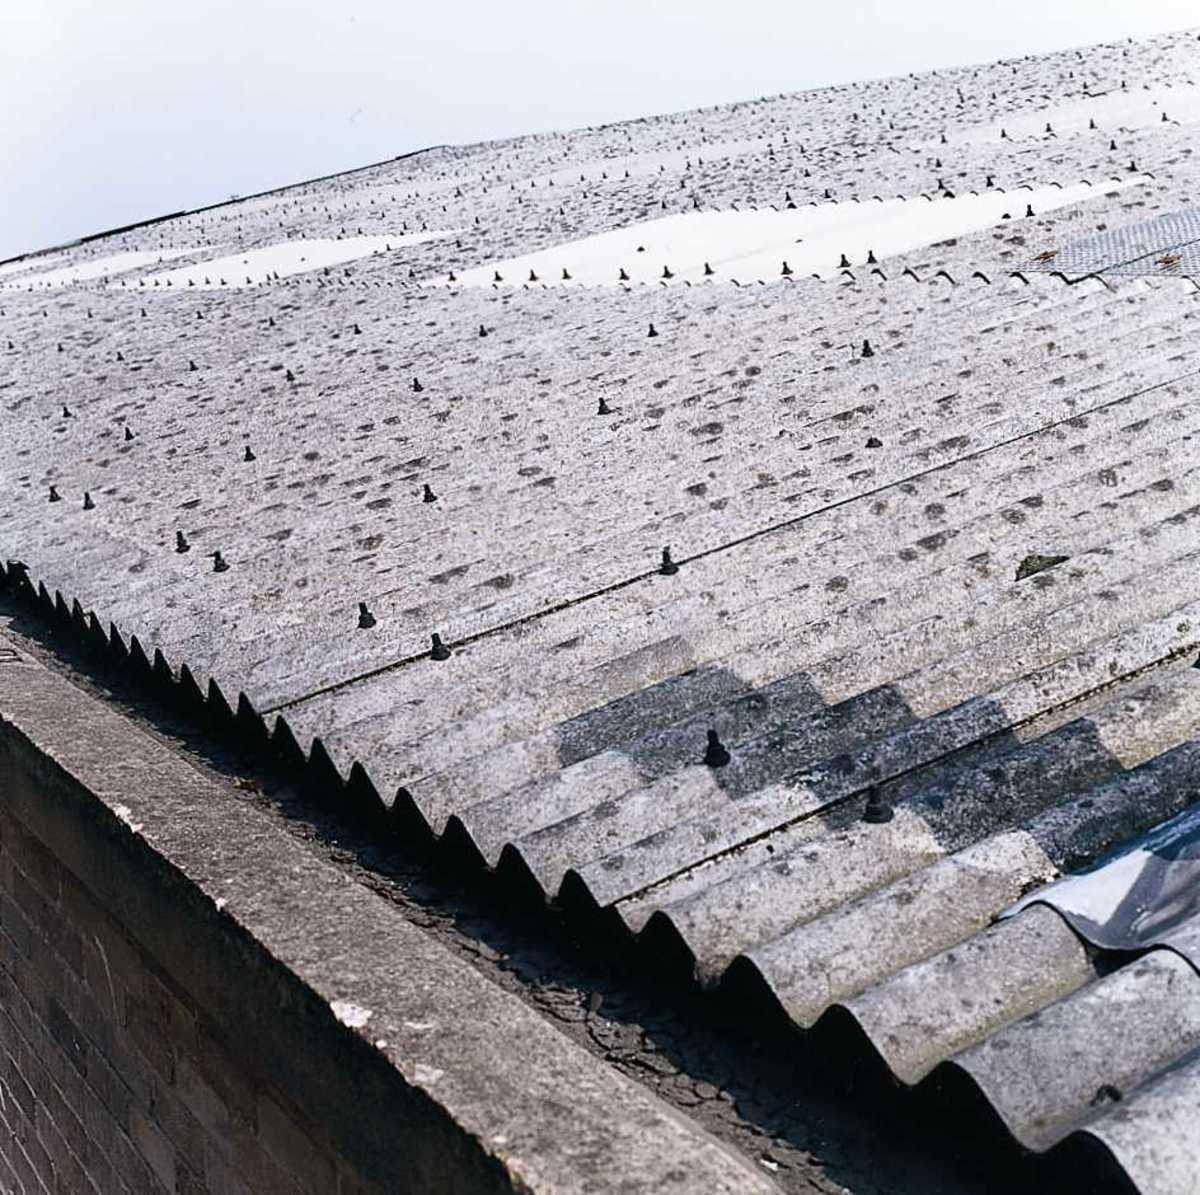 Ceiling tiles asbestos identify tile designs asbestos awareness course practice test mock questions for the uk identifying asbestos ceiling tiles dailygadgetfo Images